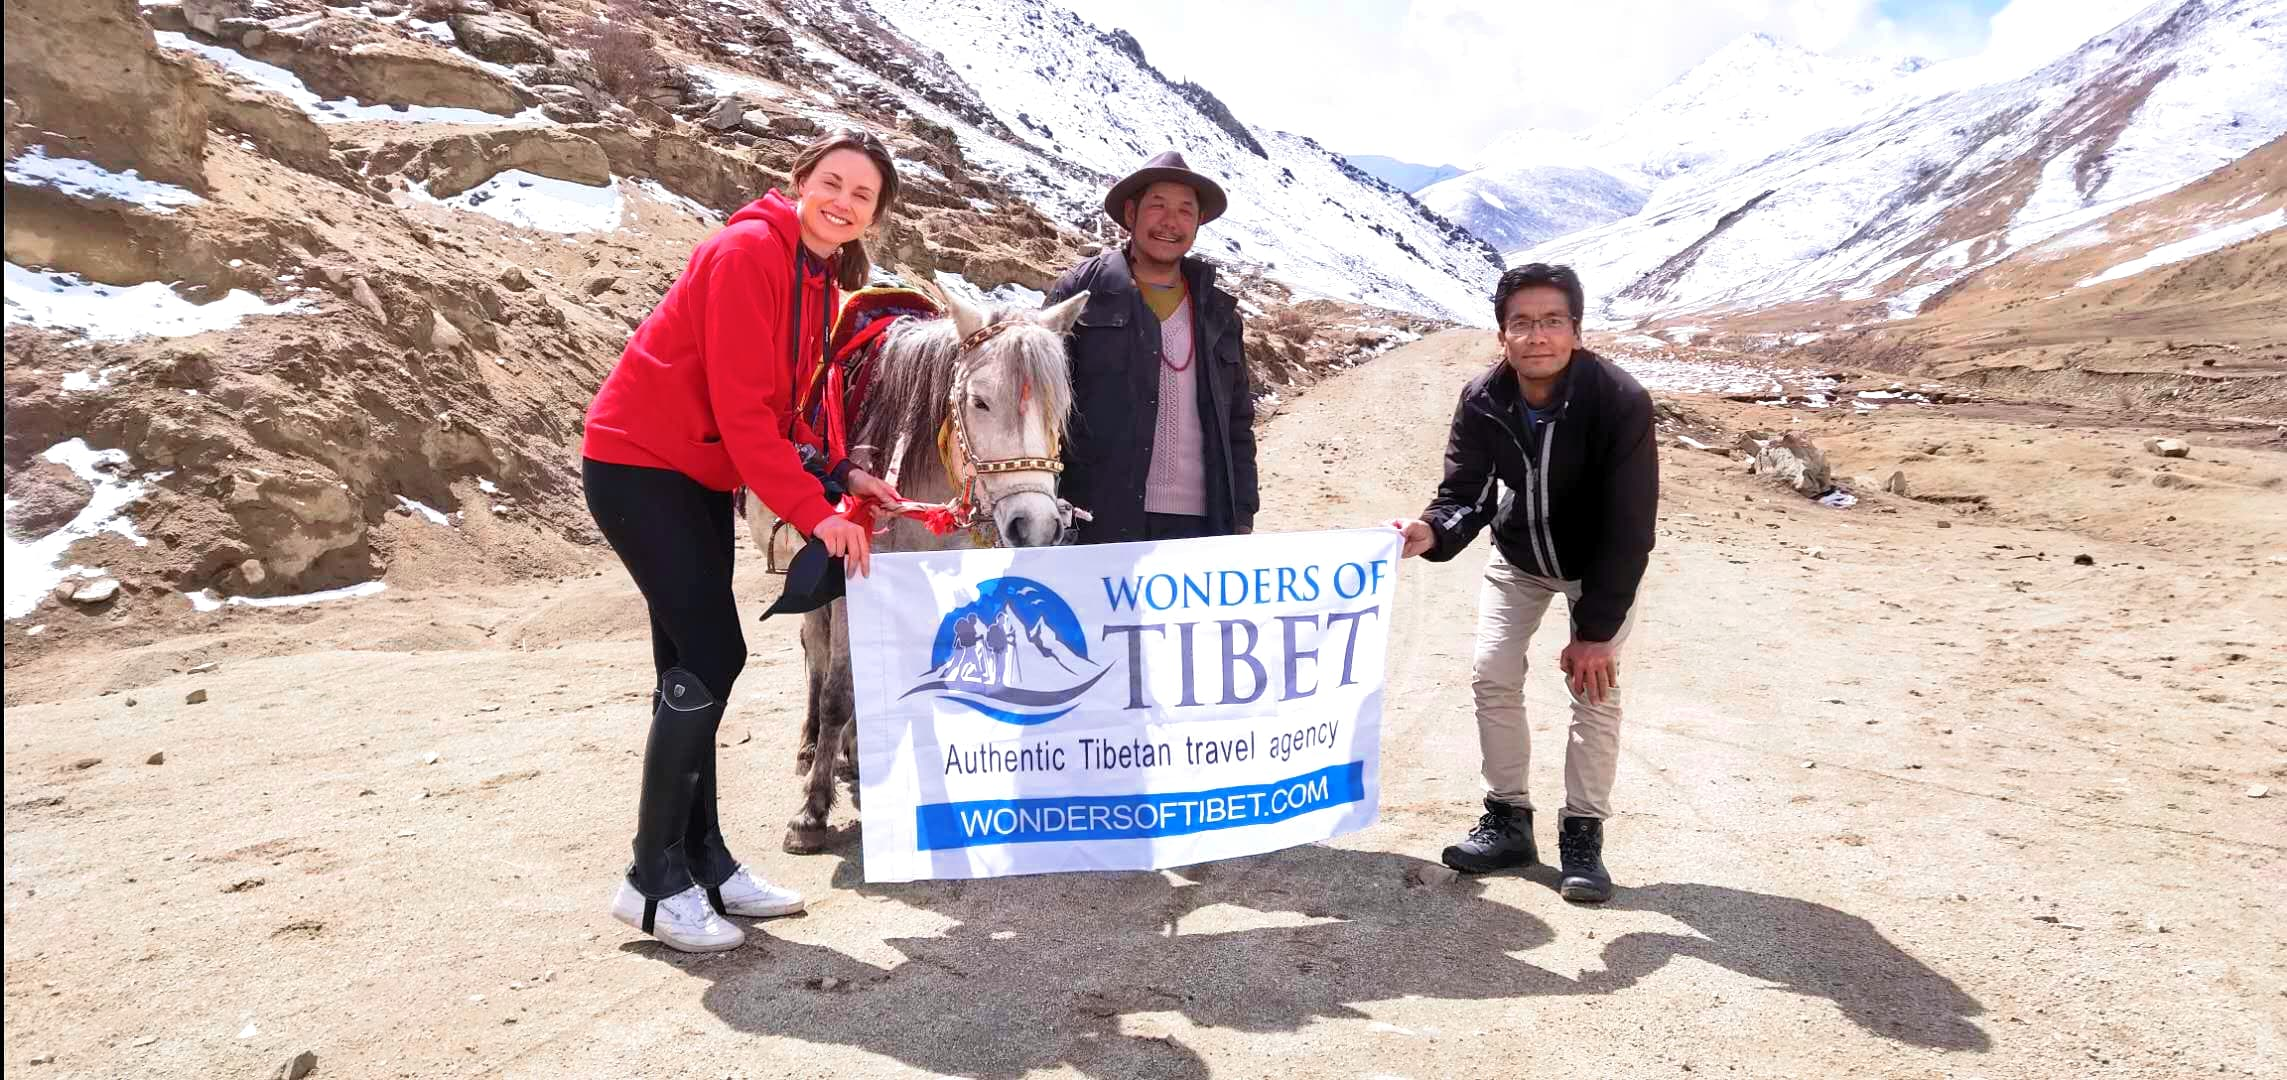 Traveling with Wonders of Tibet